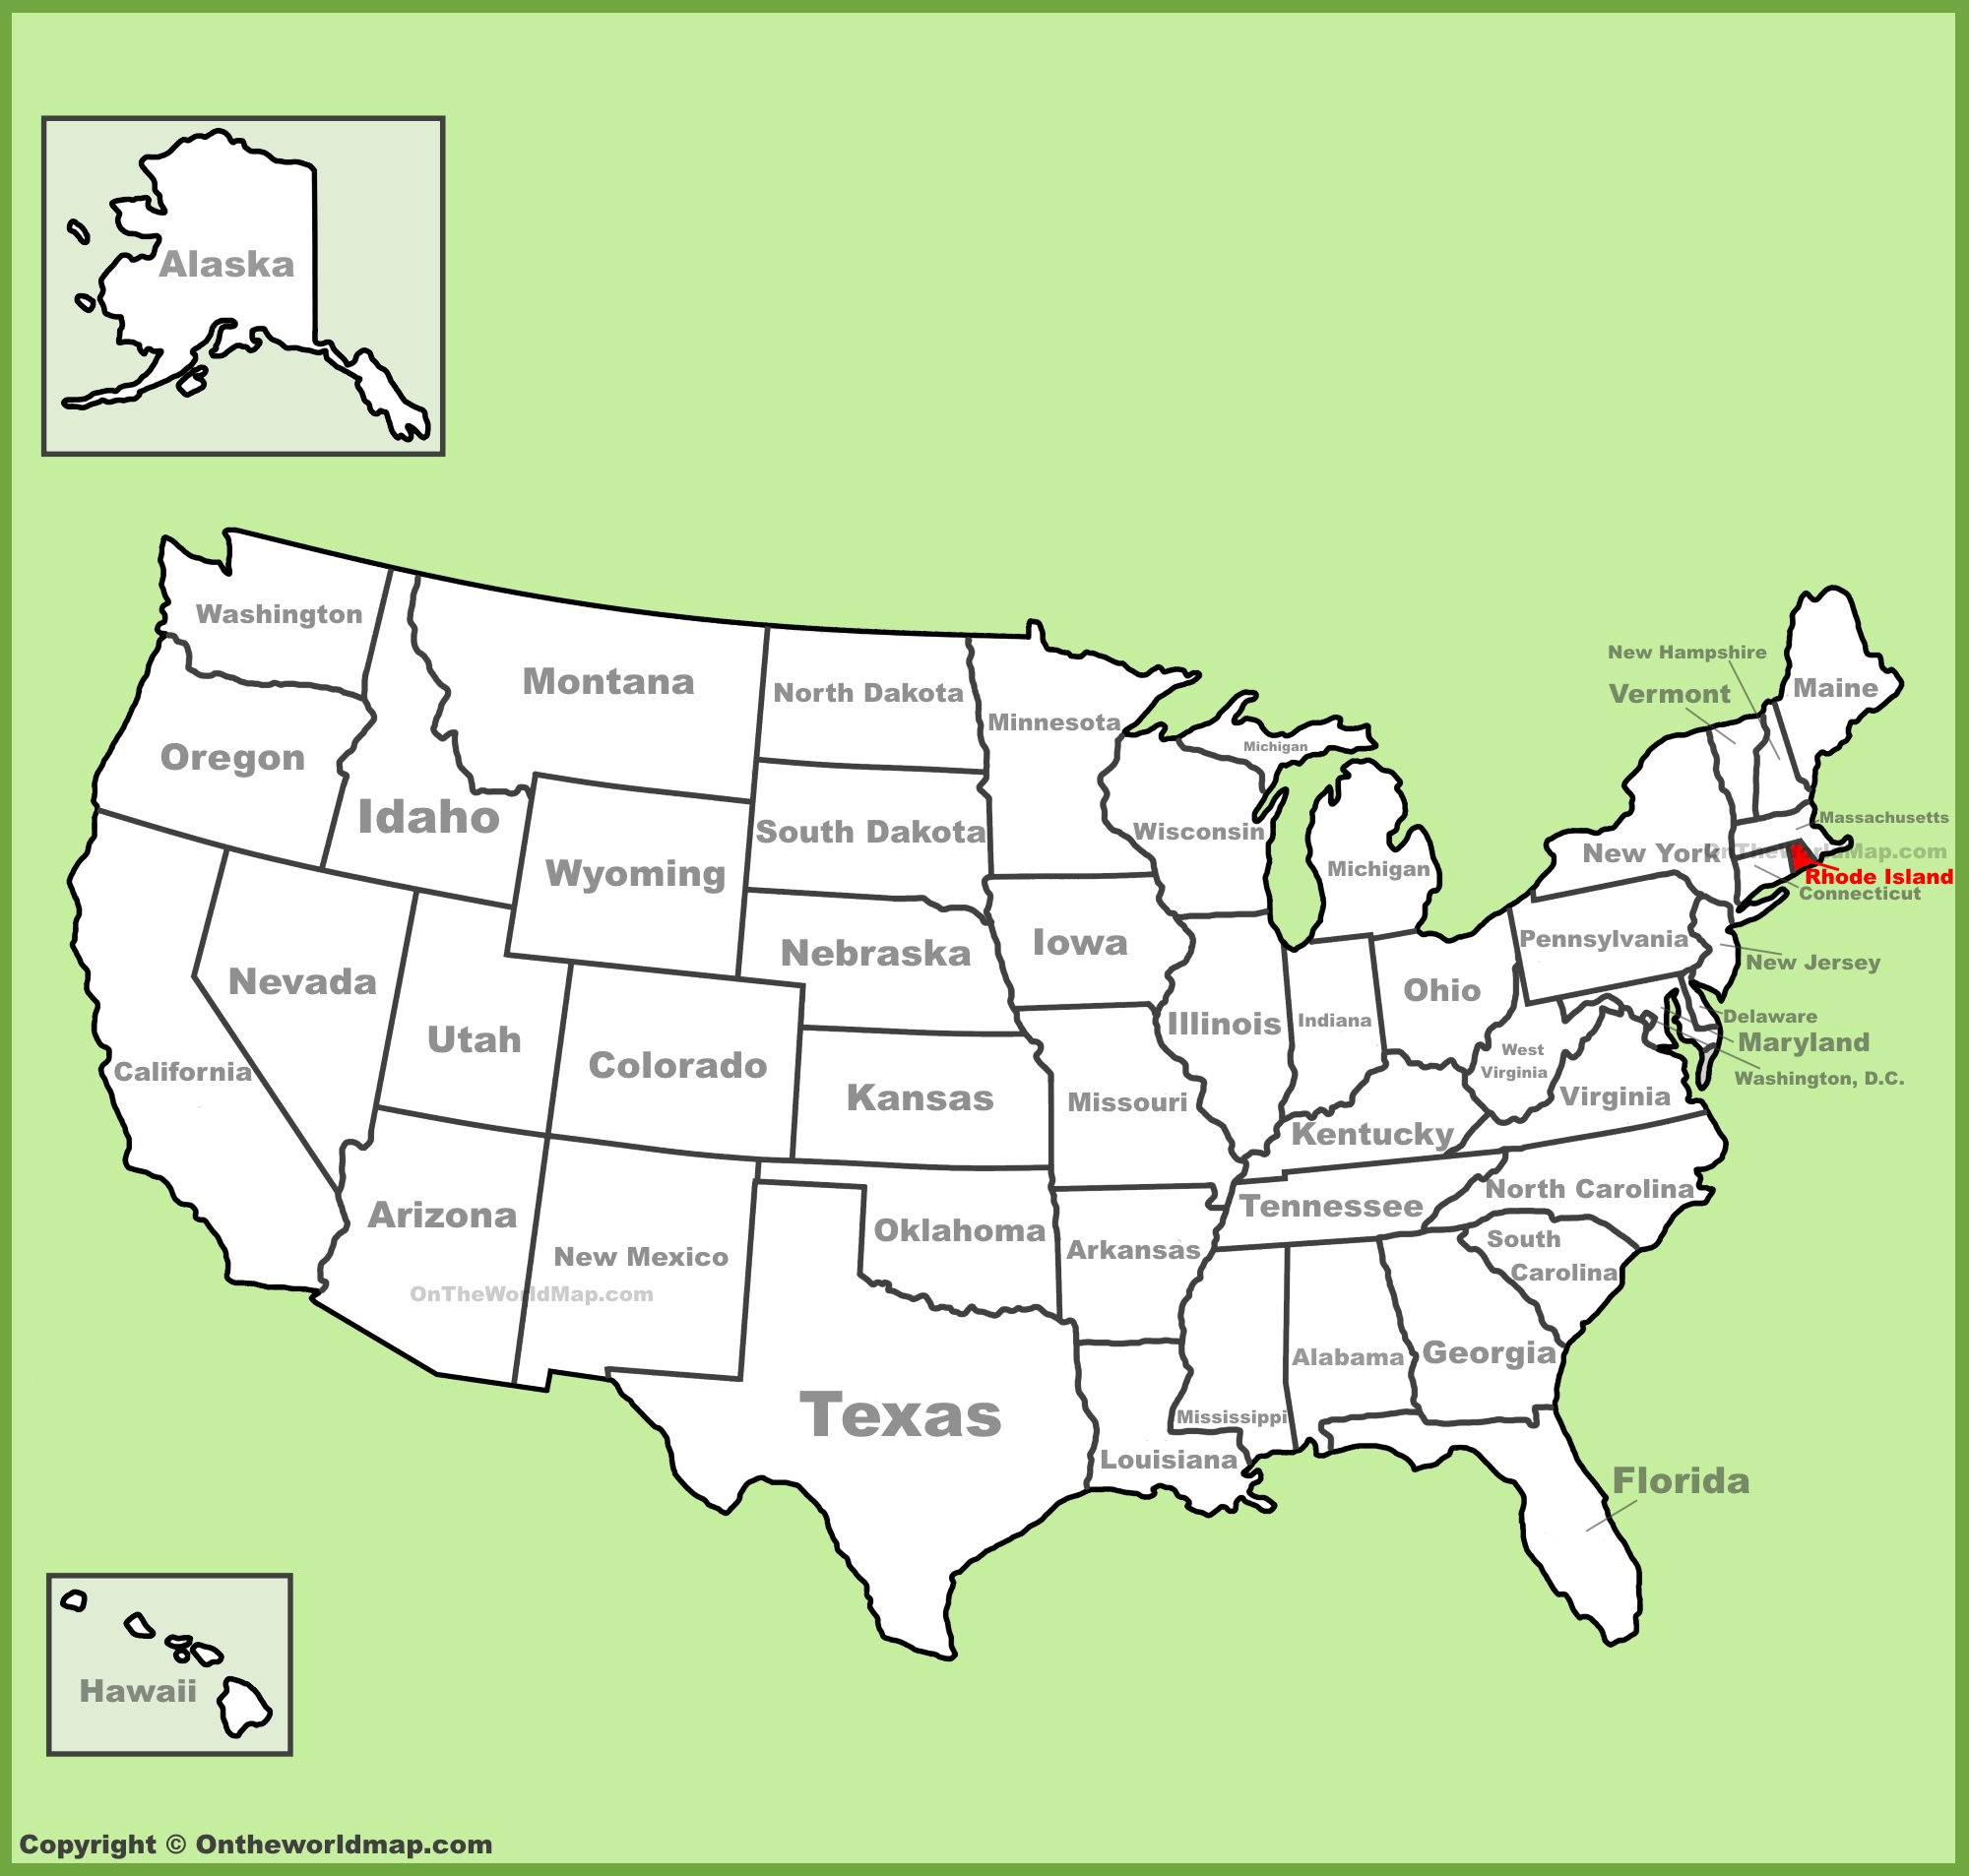 Rhode Island On A Map Rhode Island location on the U.S. Map Rhode Island On A Map